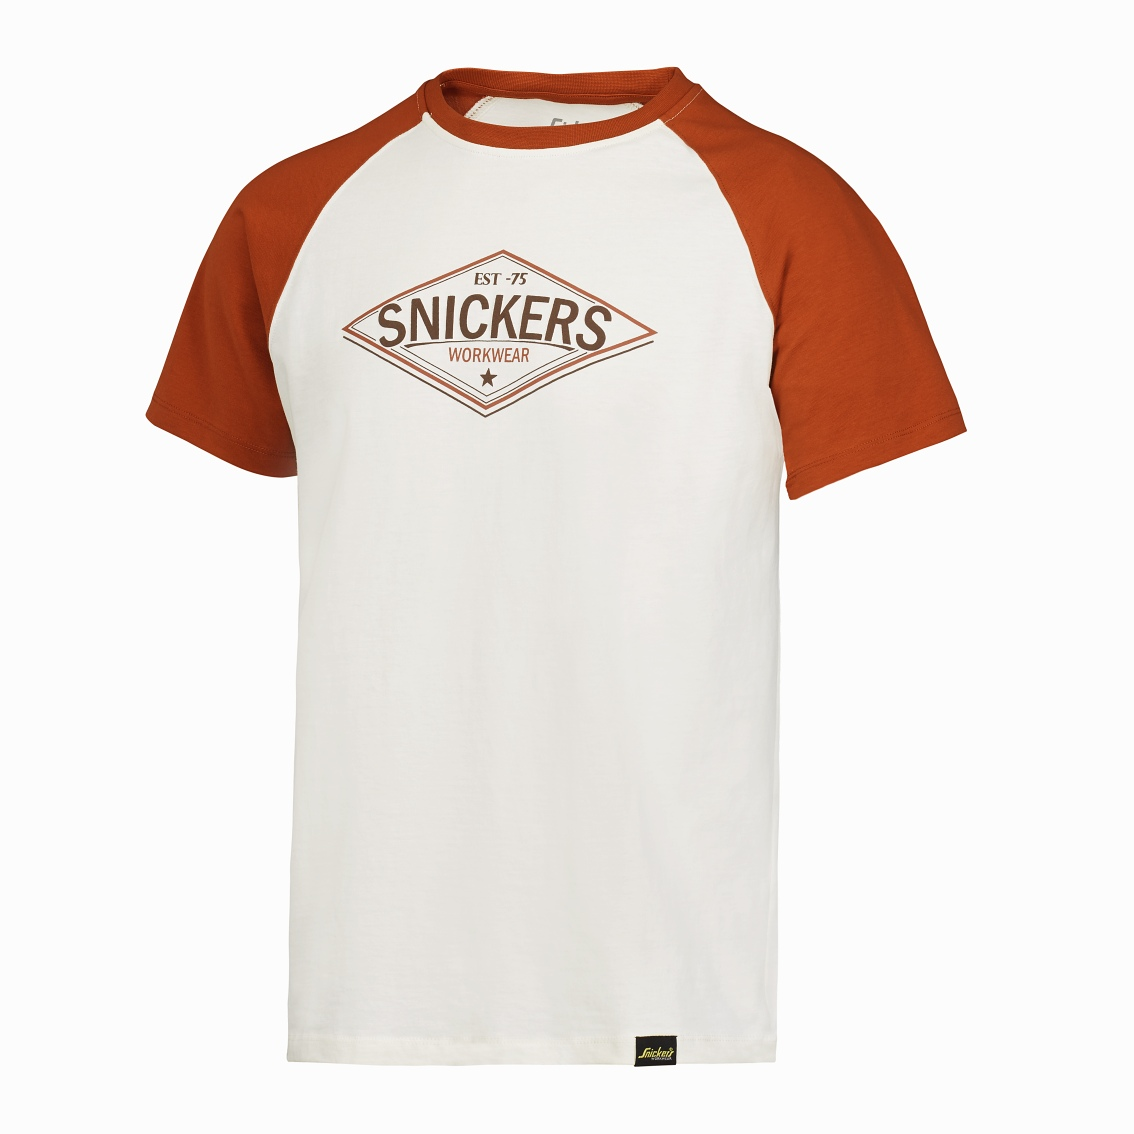 Snickers Limited Edition T-Shirt